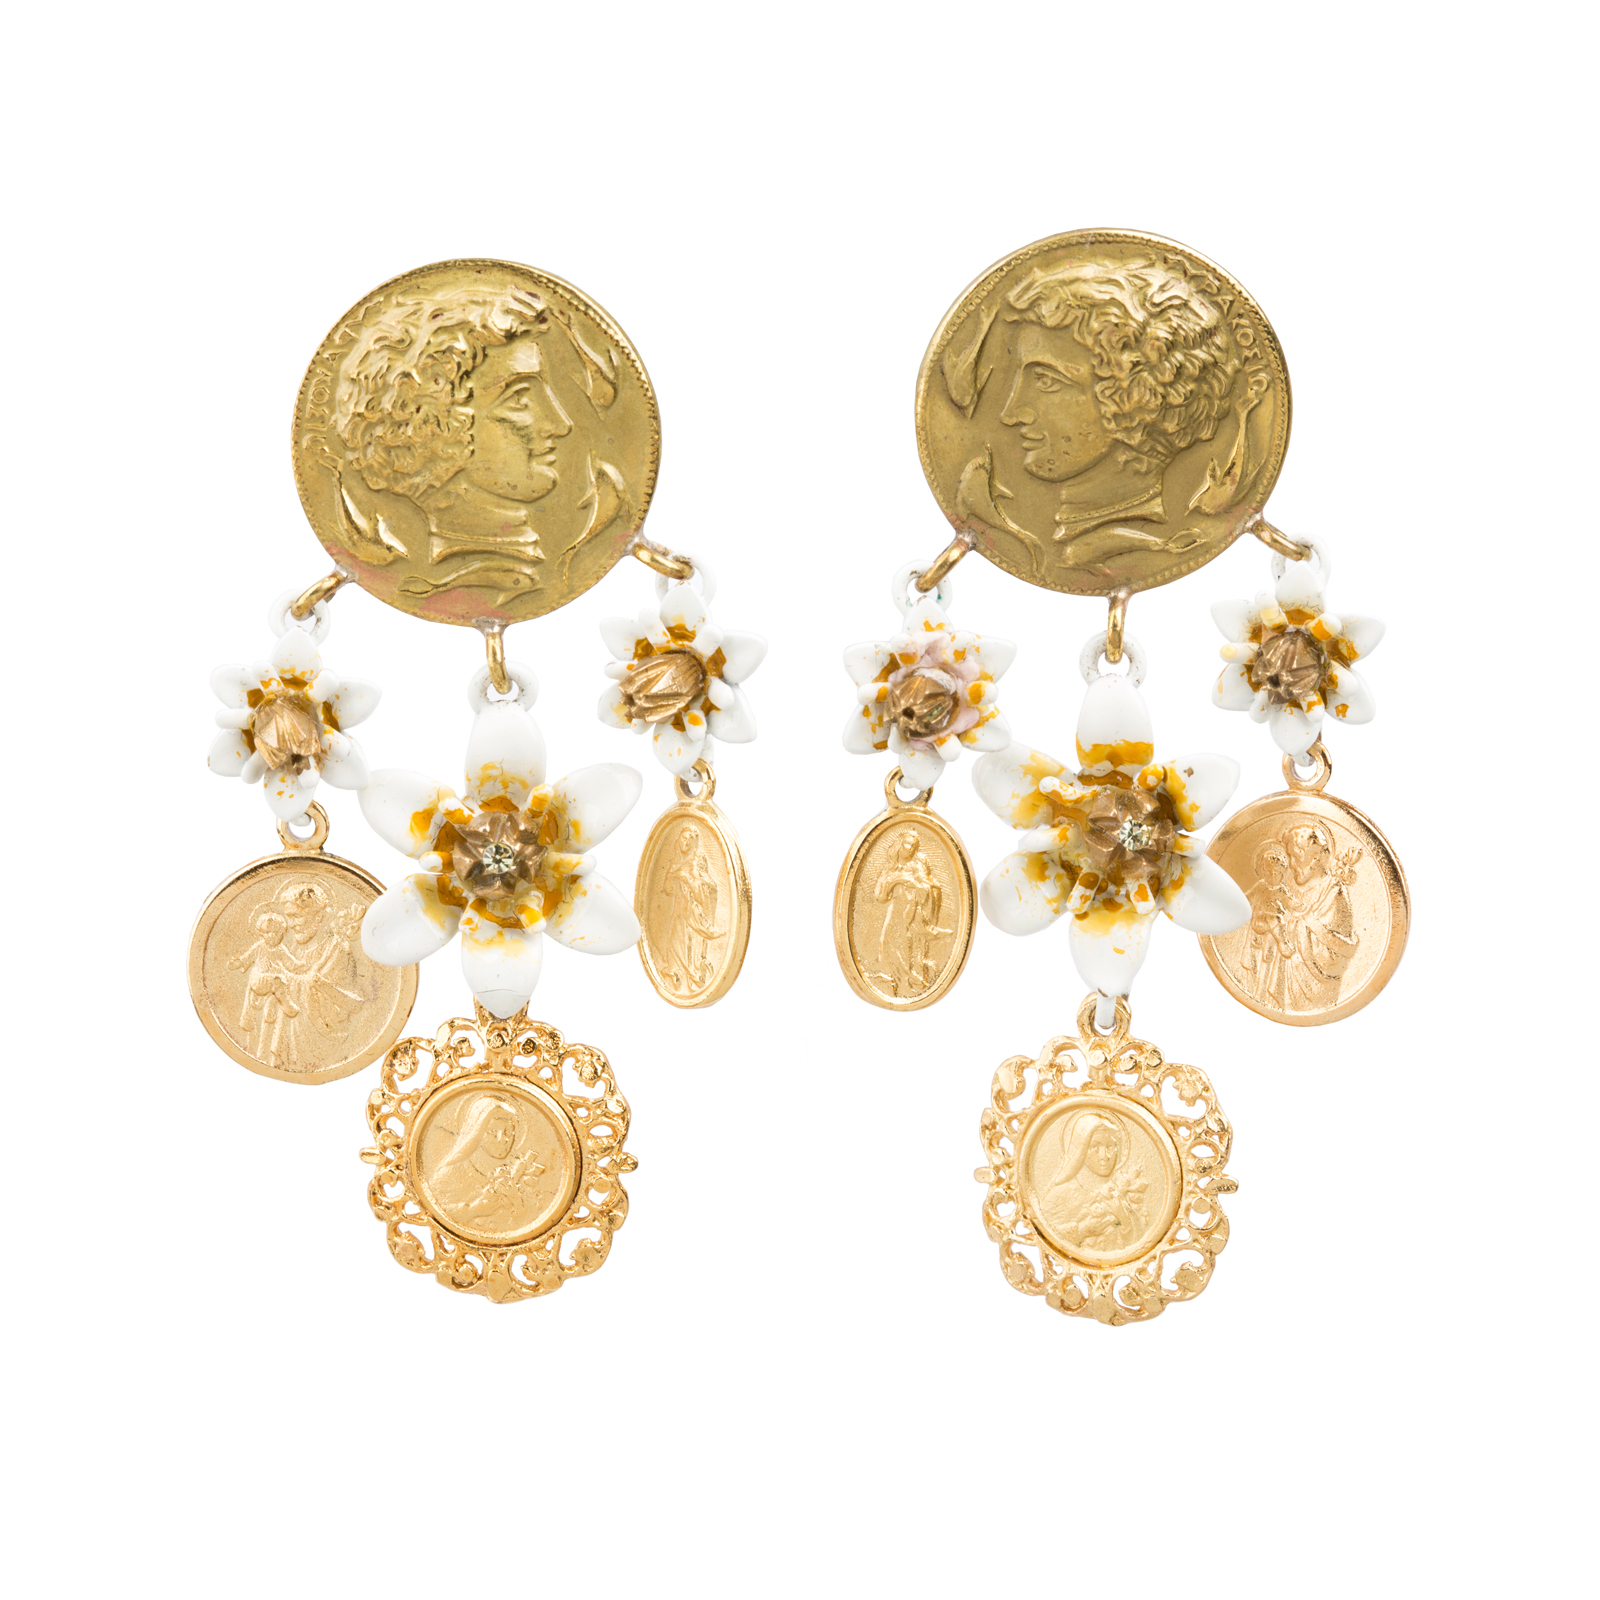 Gold Coin Earrings Dolce&gabbana  4element. 14k White Gold Wedding Band. Silver Diamond. Wholesale Gold Jewelry. Personalized Bracelet. Ladies Gold Wedding Band. Traditional Rings. Luxury Necklace. Arrow Necklace